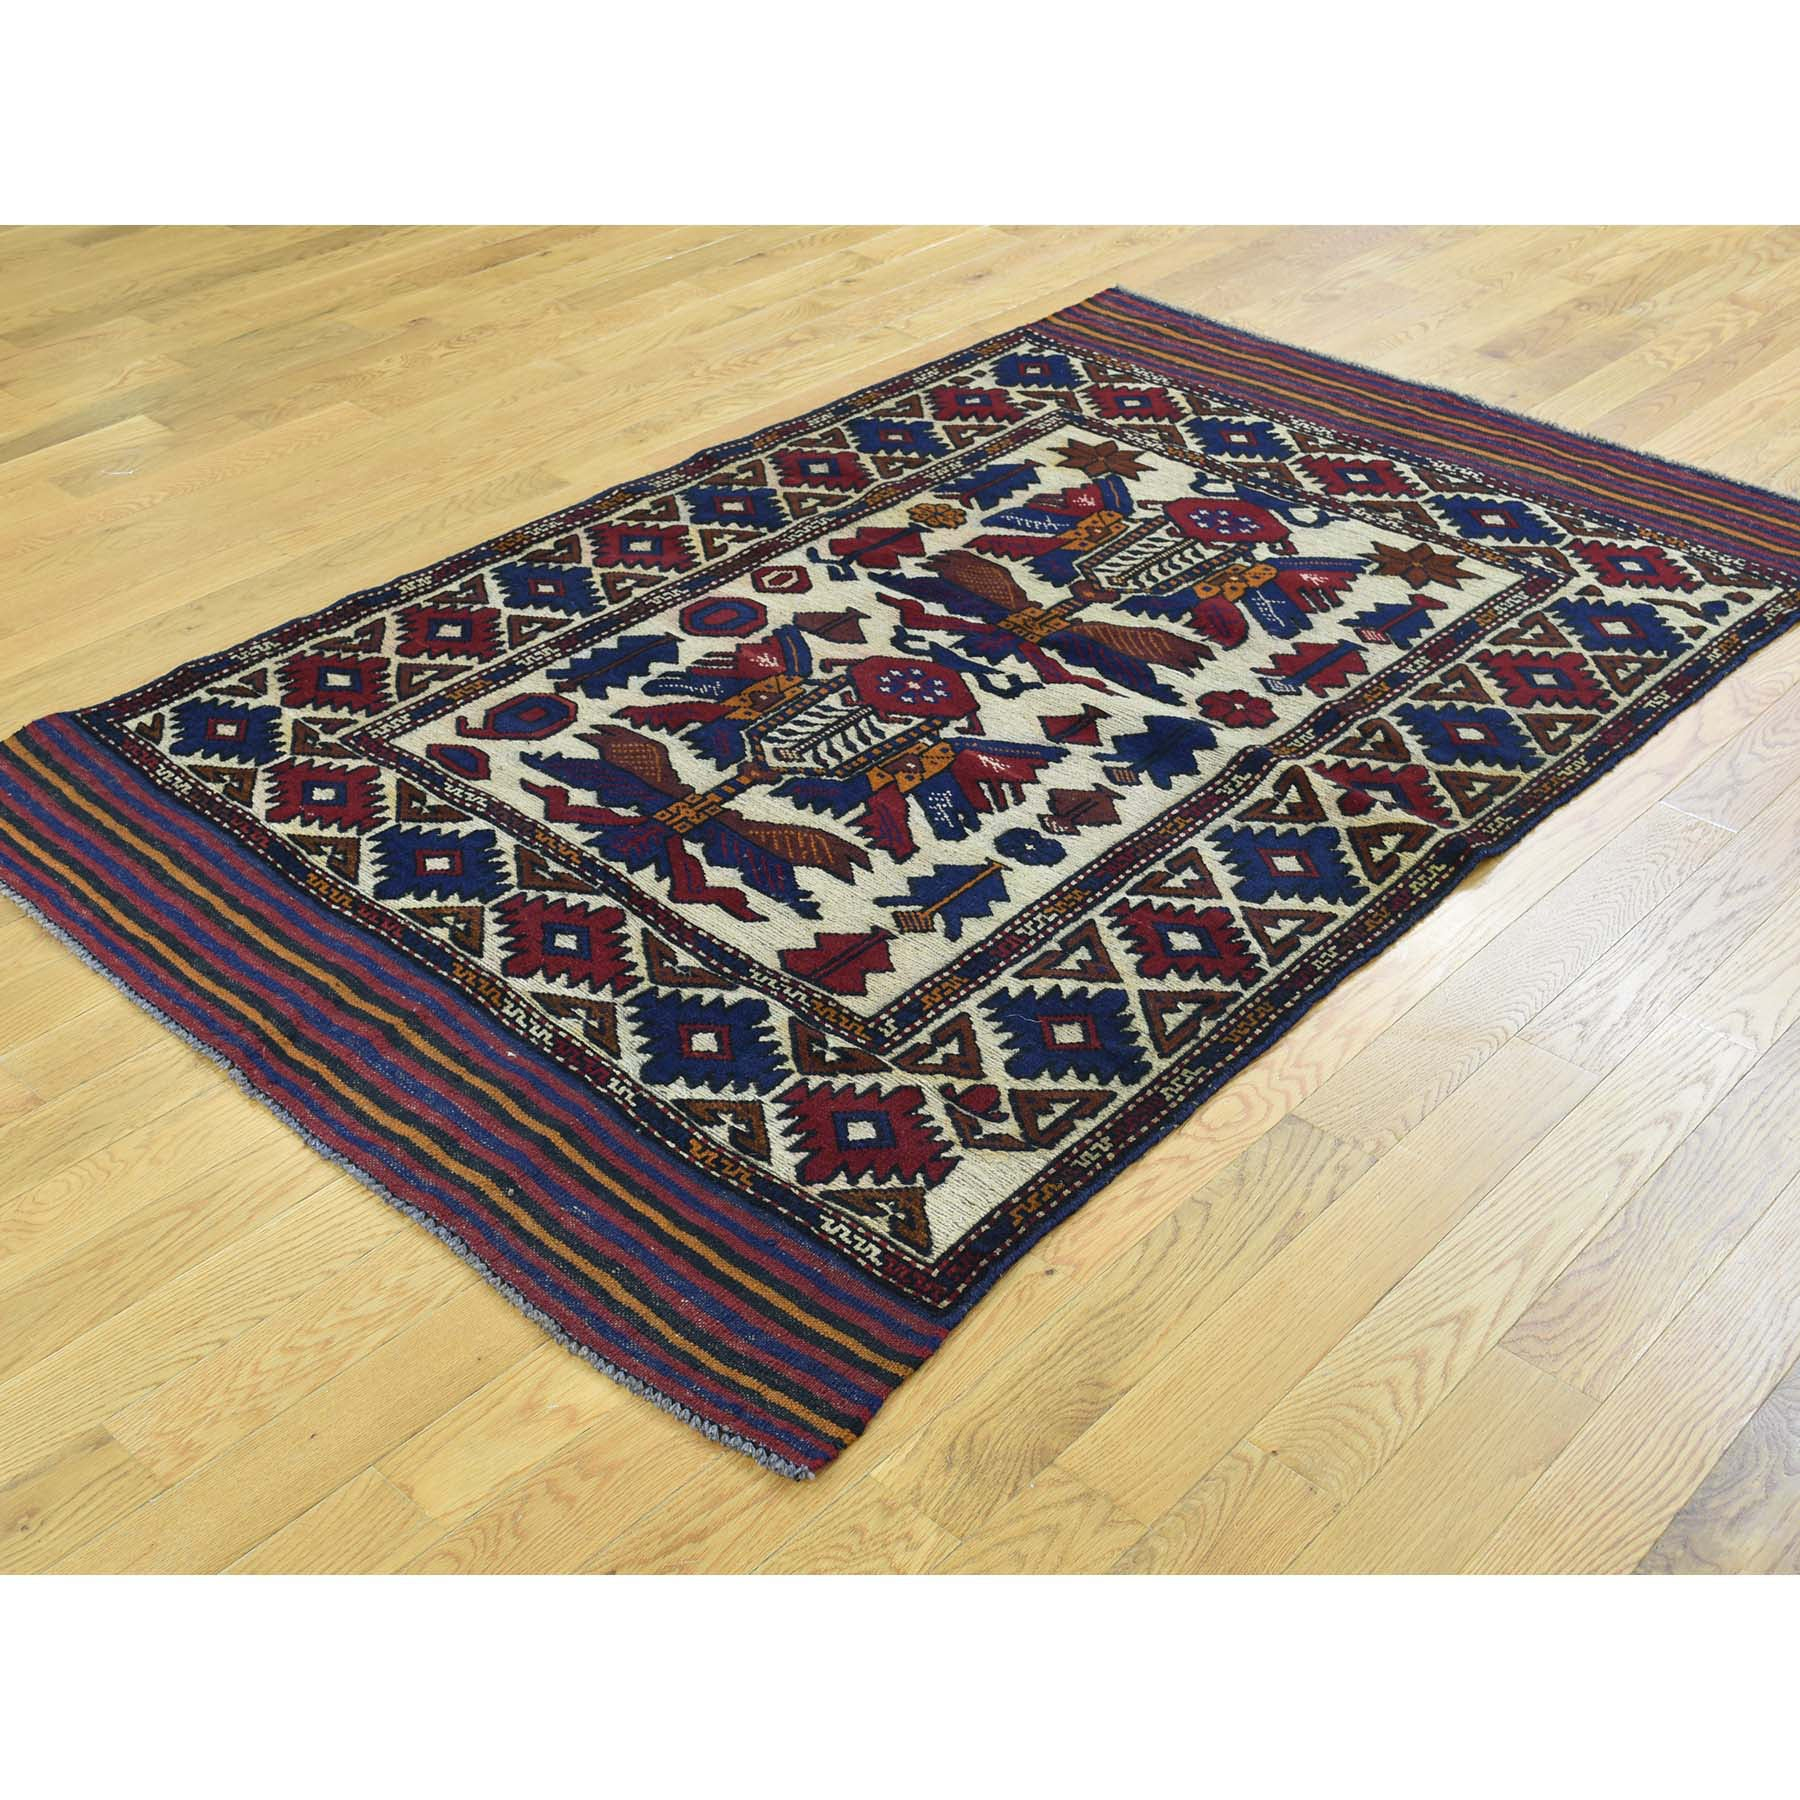 "Handmade Tribal & Geometric Rectangle Rug > Design# SH32121 > Size: 4'-1"" x 6'-3"" [ONLINE ONLY]"